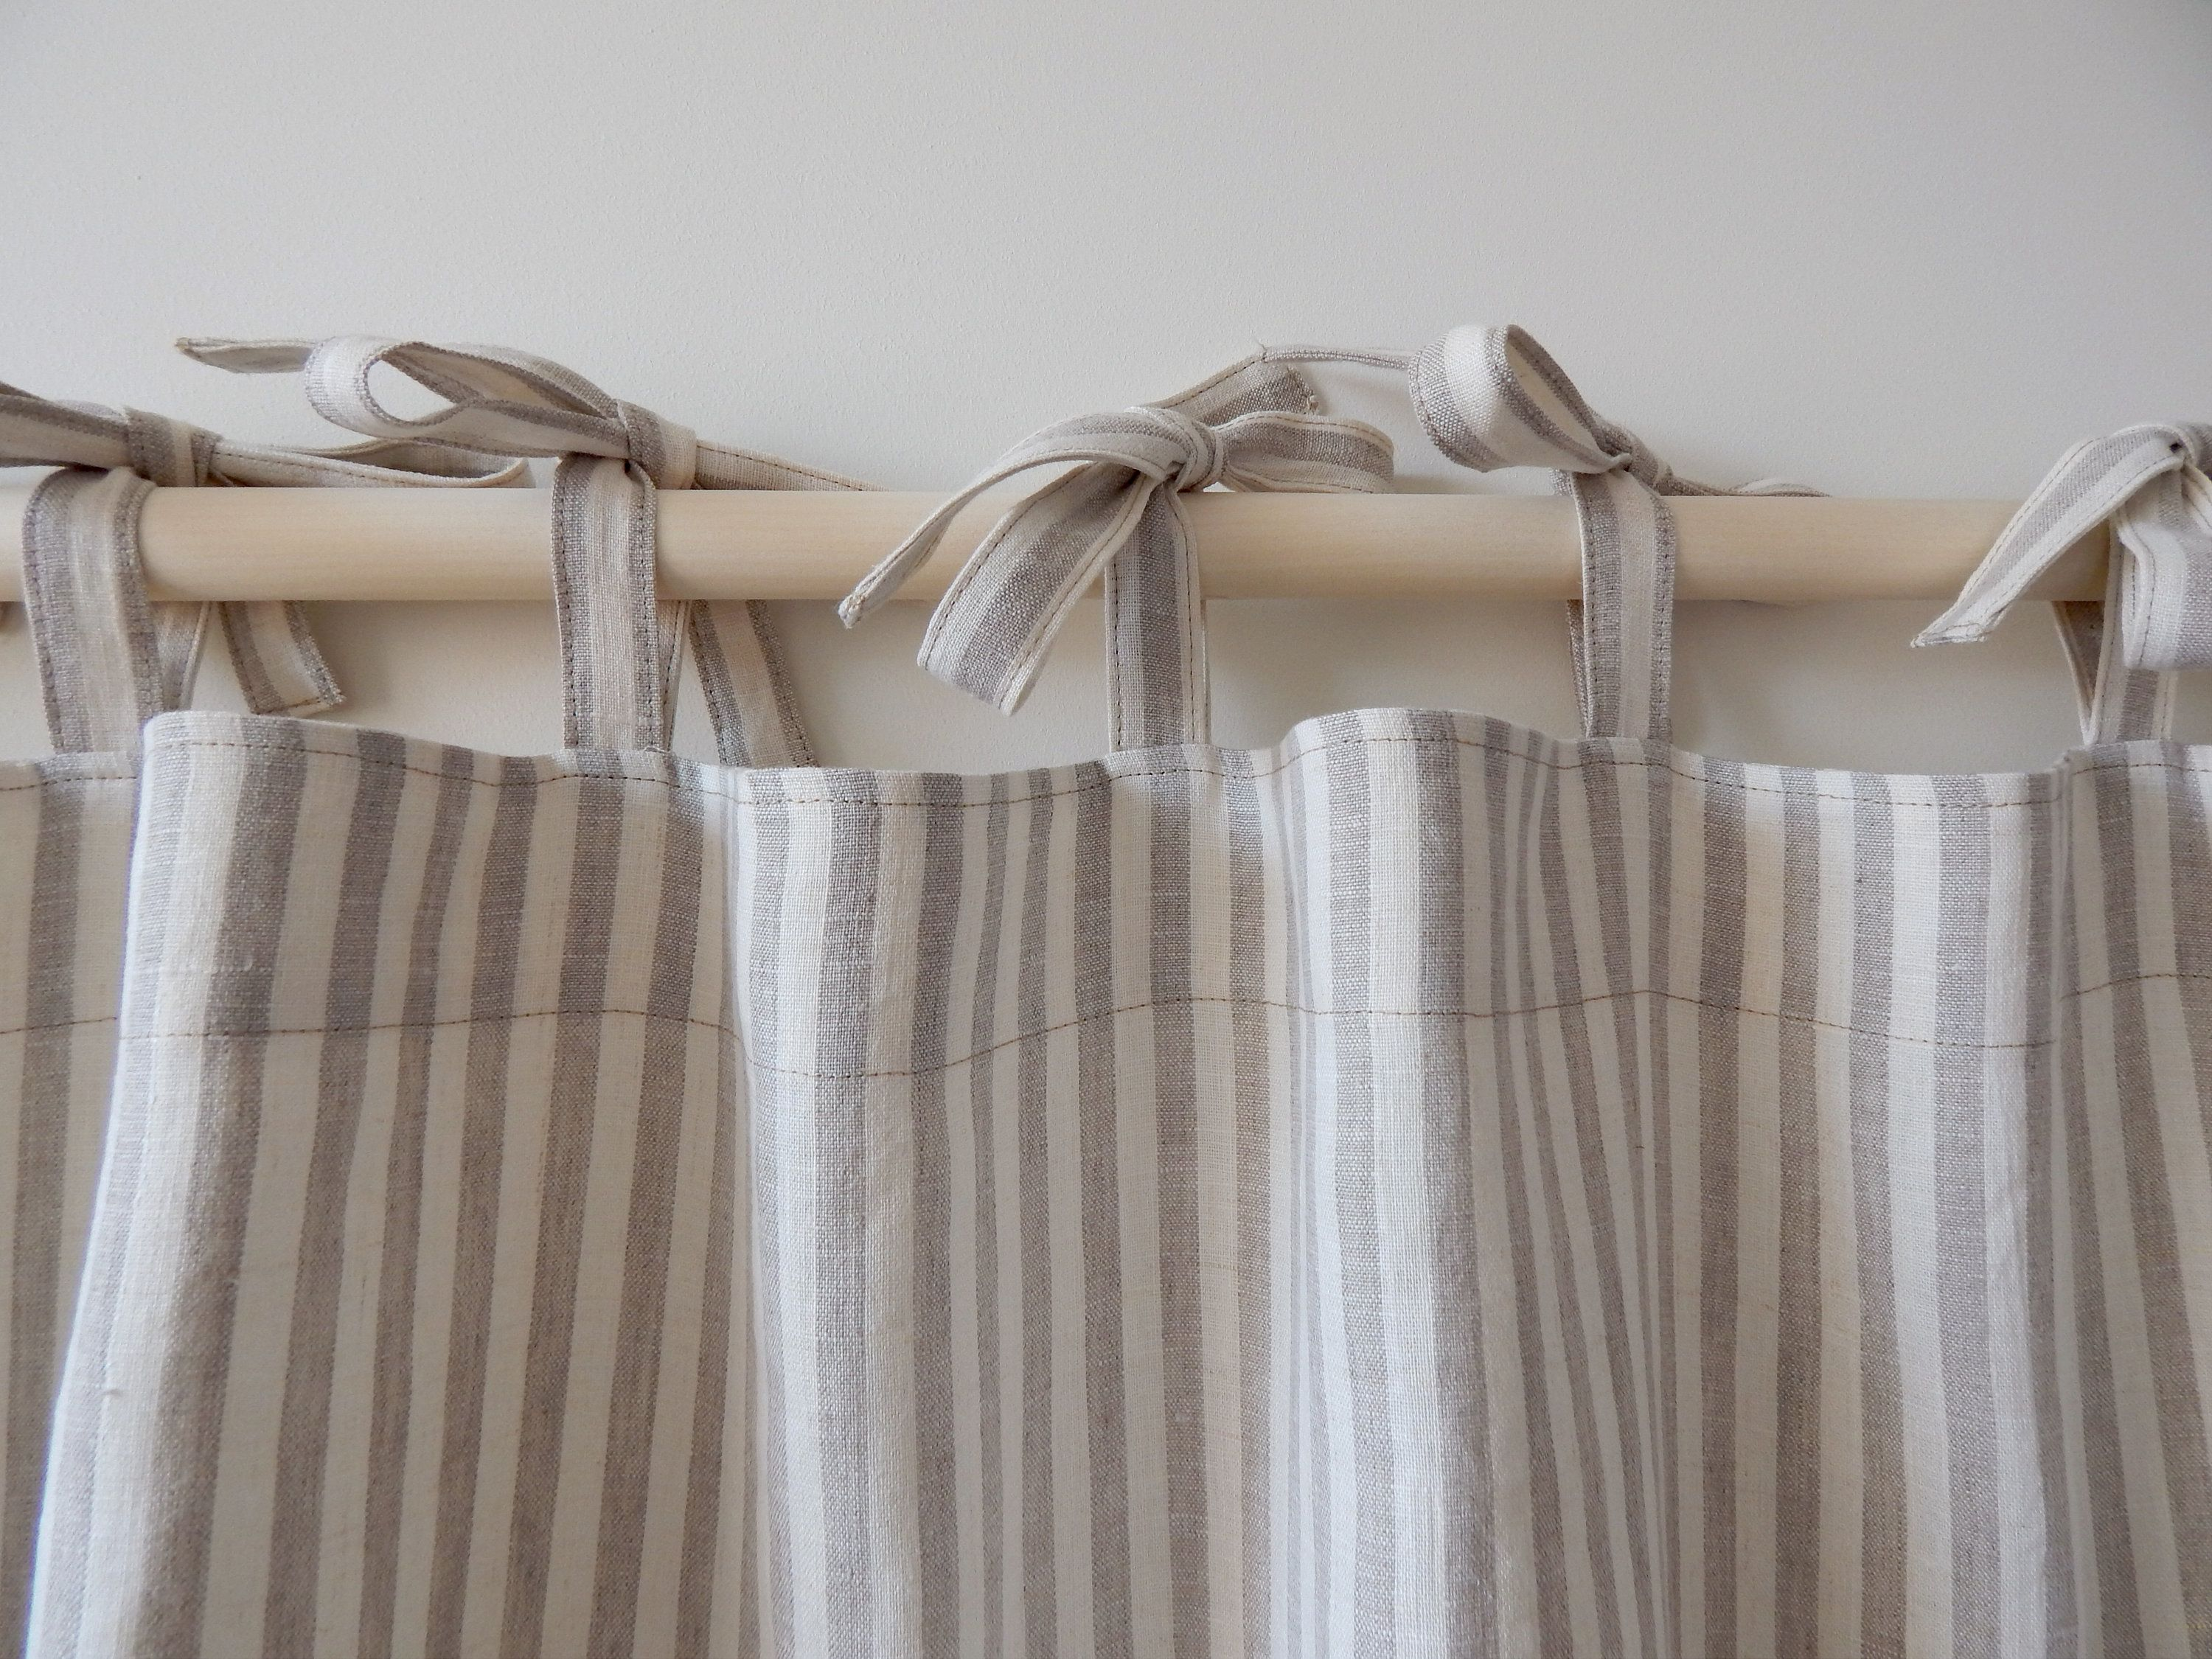 Linen curtains Natural striped curtains Kitchen curtains